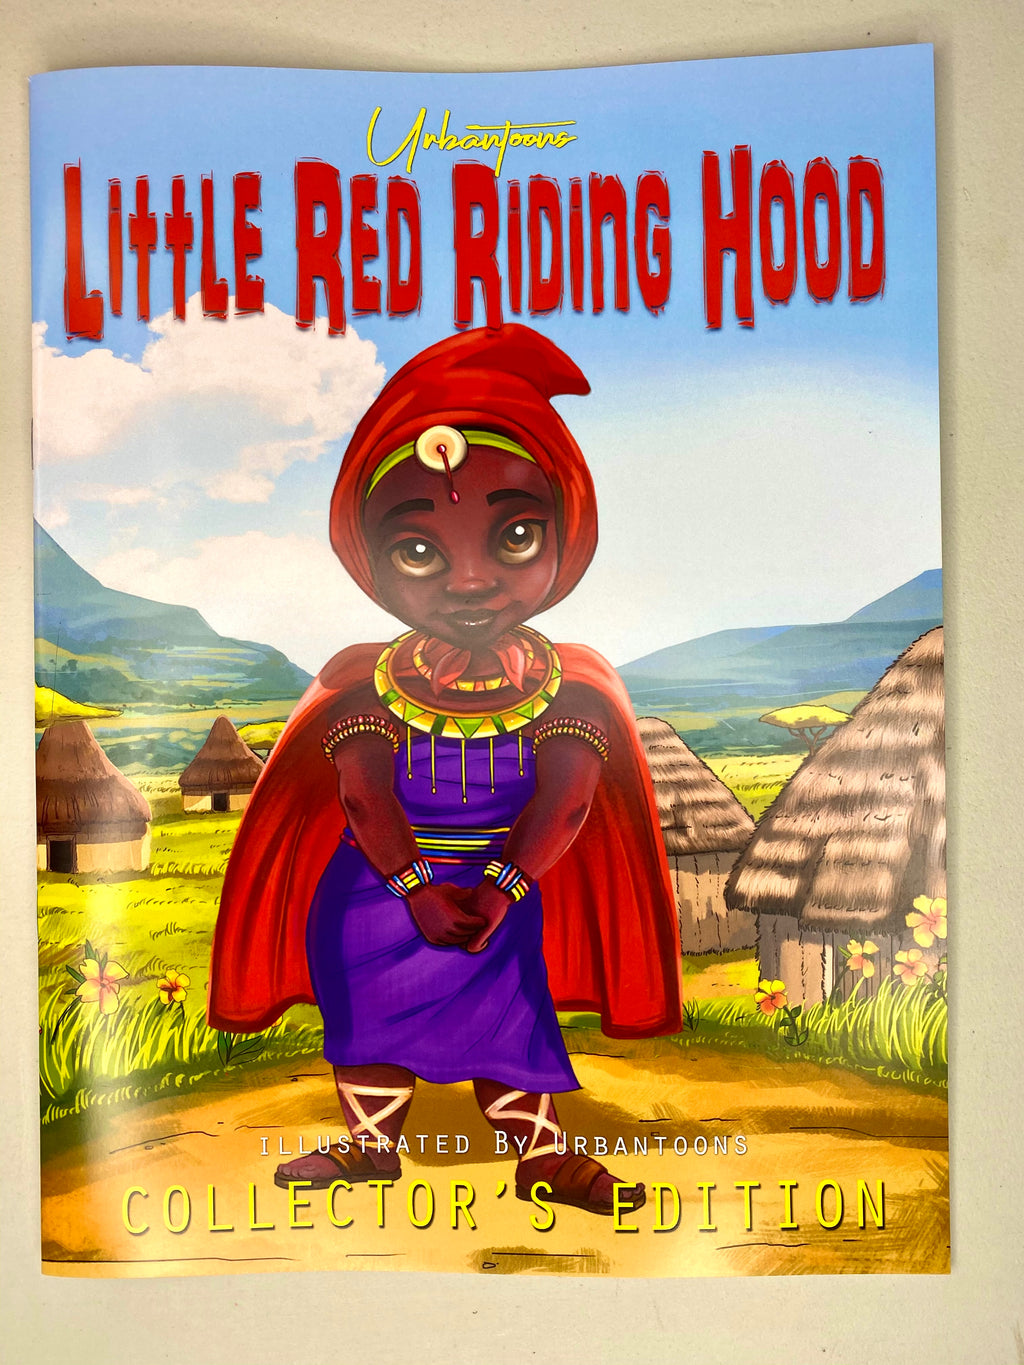 Little Red Riding Hood Collector'e Edition Signed  12x9 Book